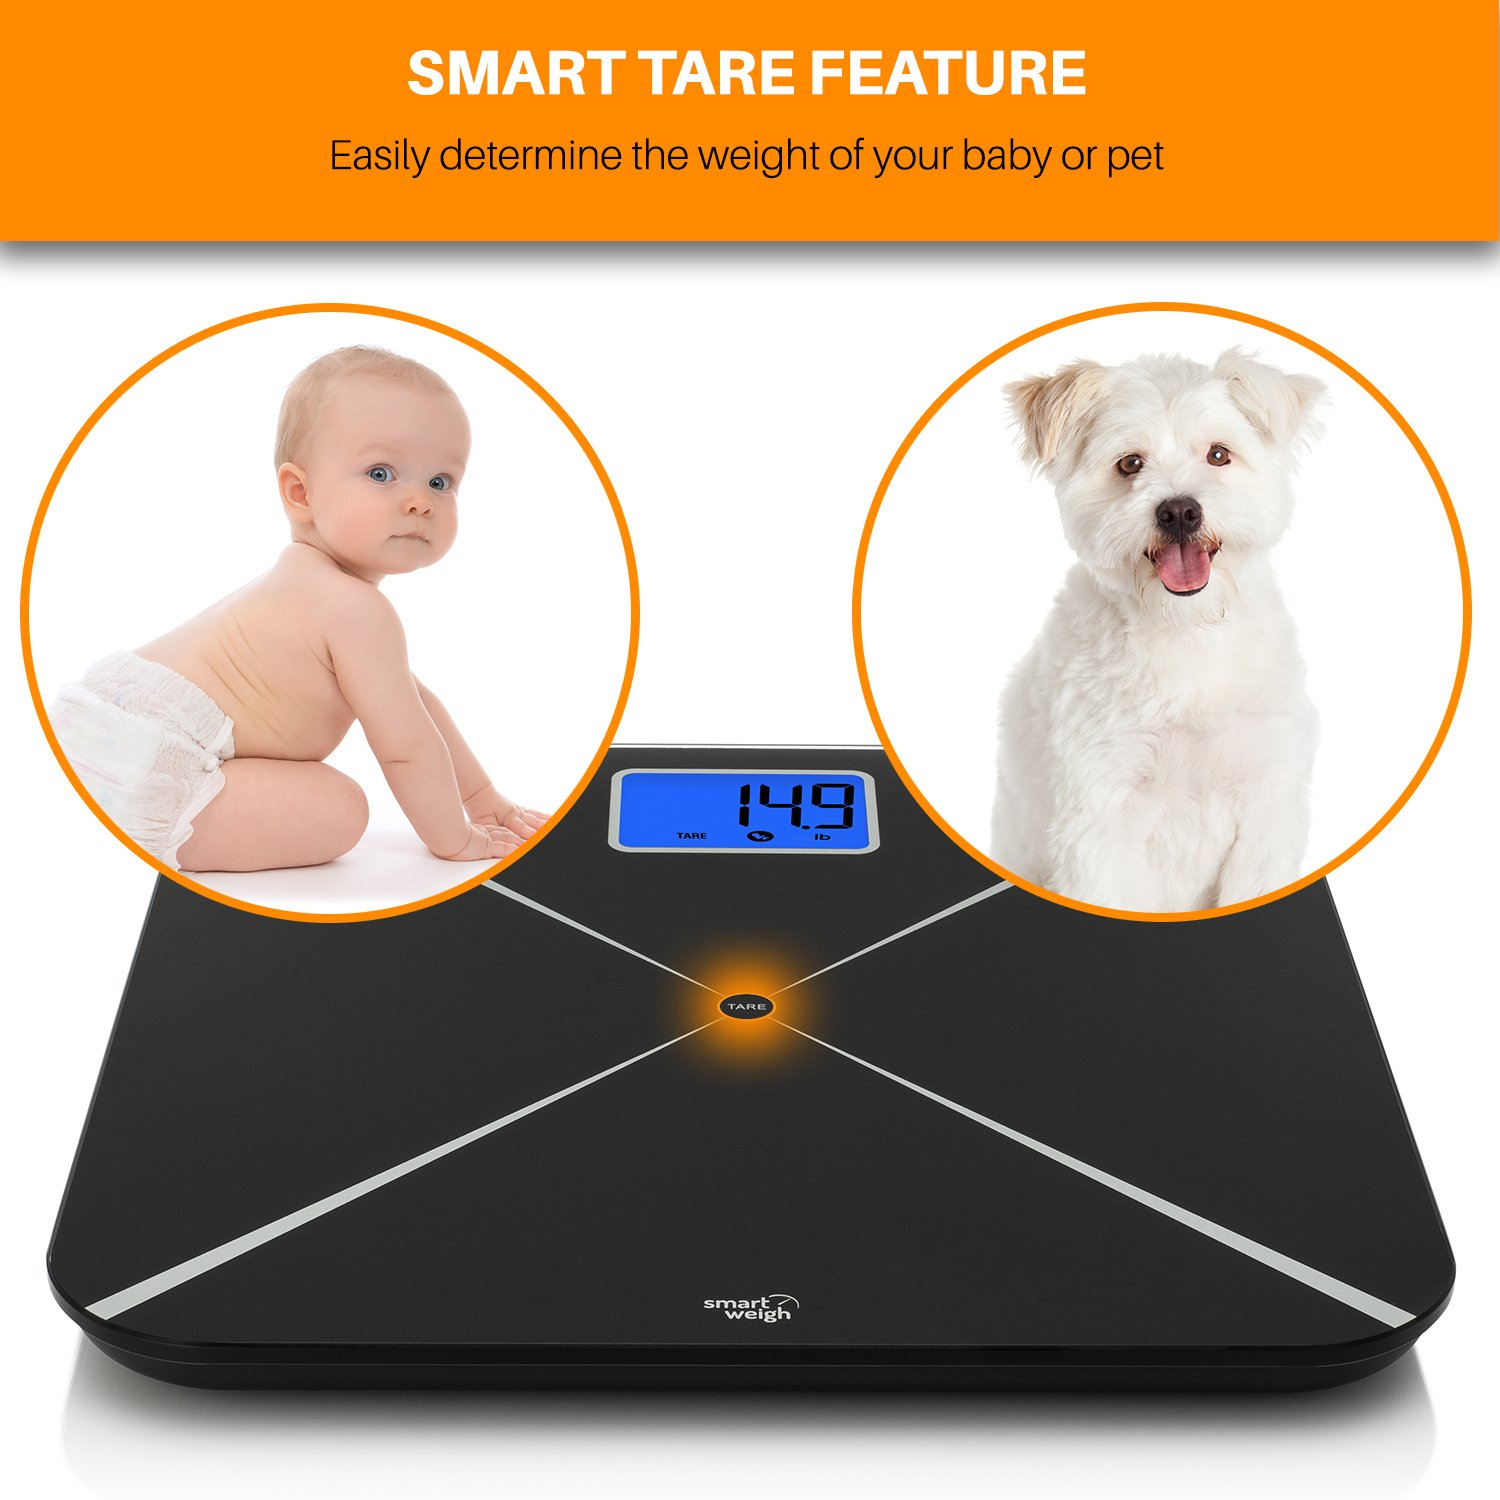 Smart Weigh Digital Body Weight Scale with Baby or Pet Tare Weighing Technology, Bathroom Scale with Large LCD Display and Tempered Glass Platform, 440lbs/200kg Capacity (Black) by Smart Weigh (Image #3)